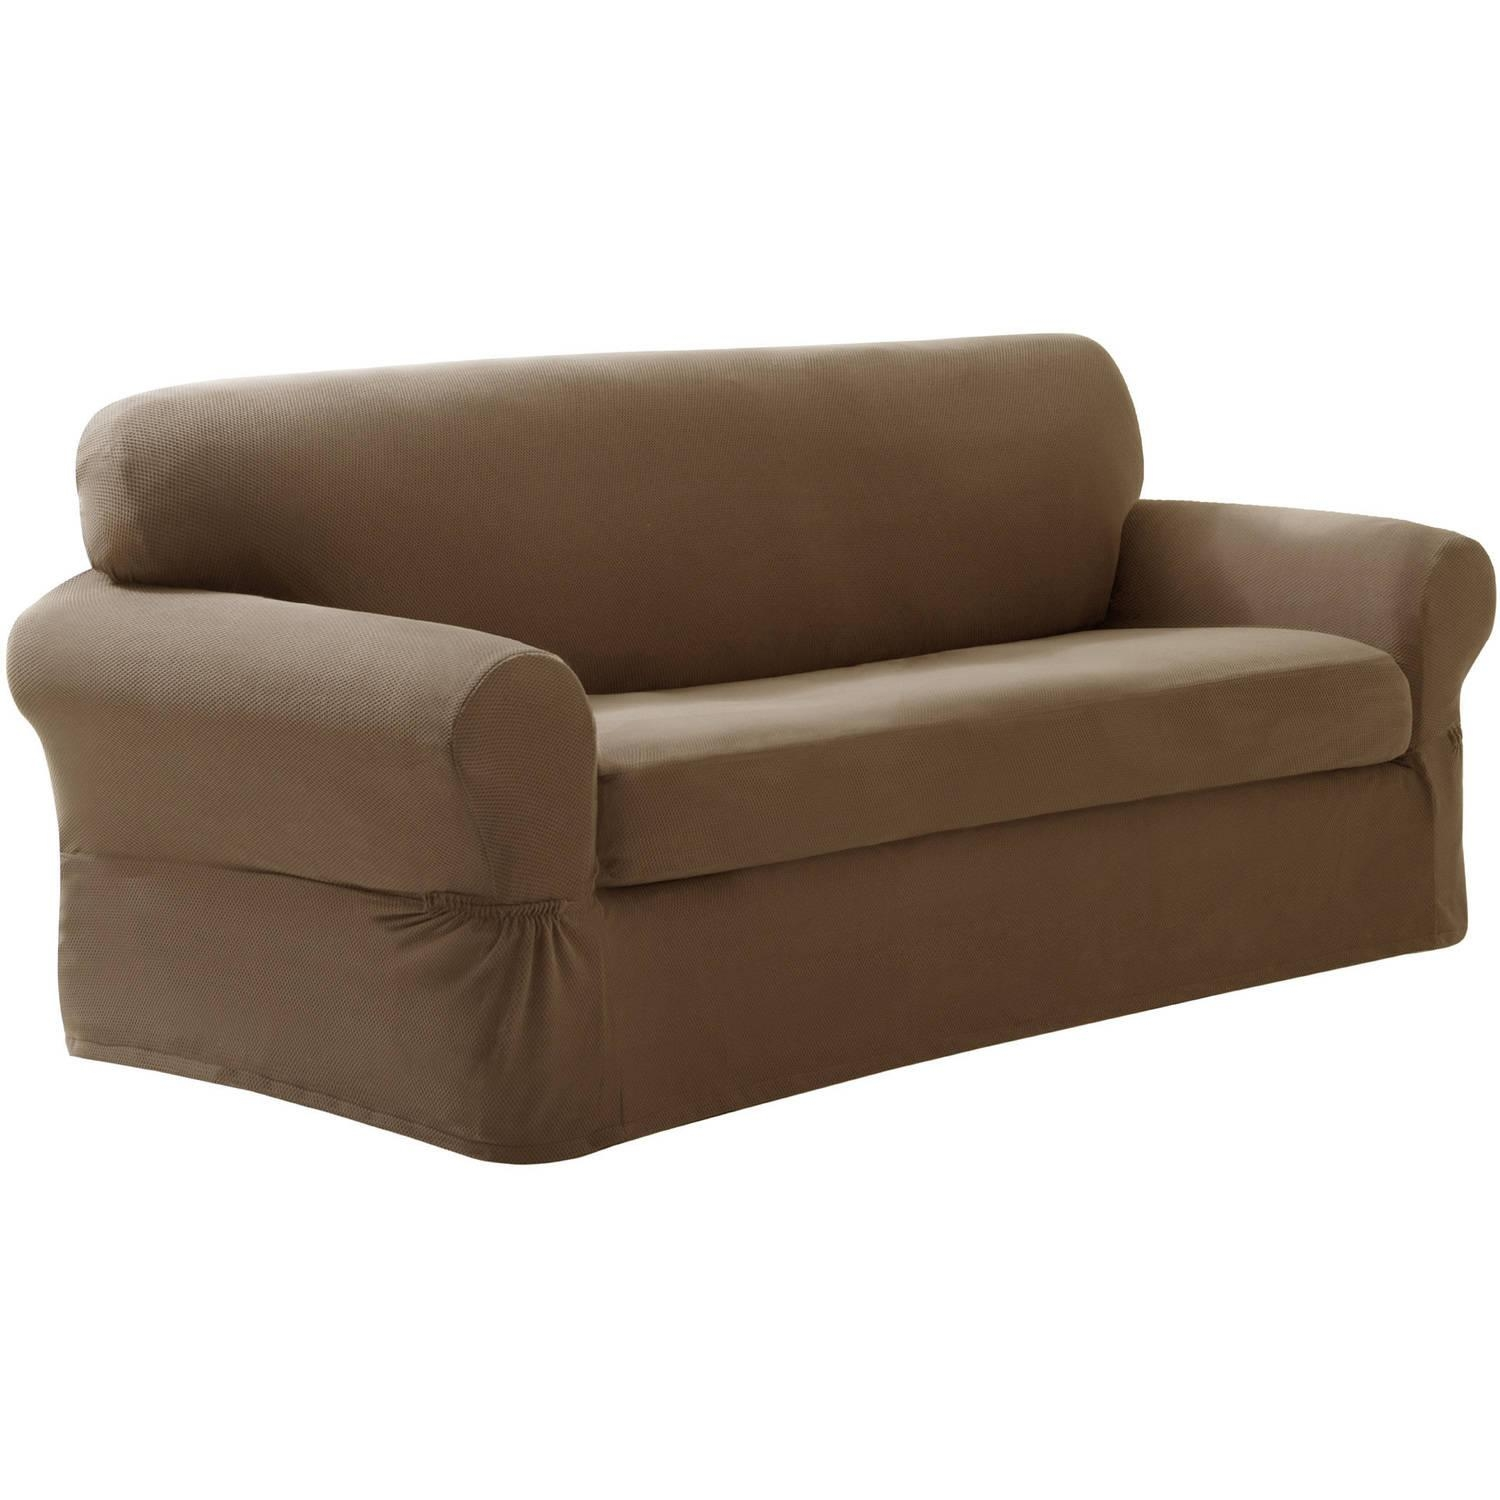 Sofas Center : Sofa Slipcovers Walmart Maytex Stretch Piece With Stretch Slipcover Sofas (Image 16 of 20)